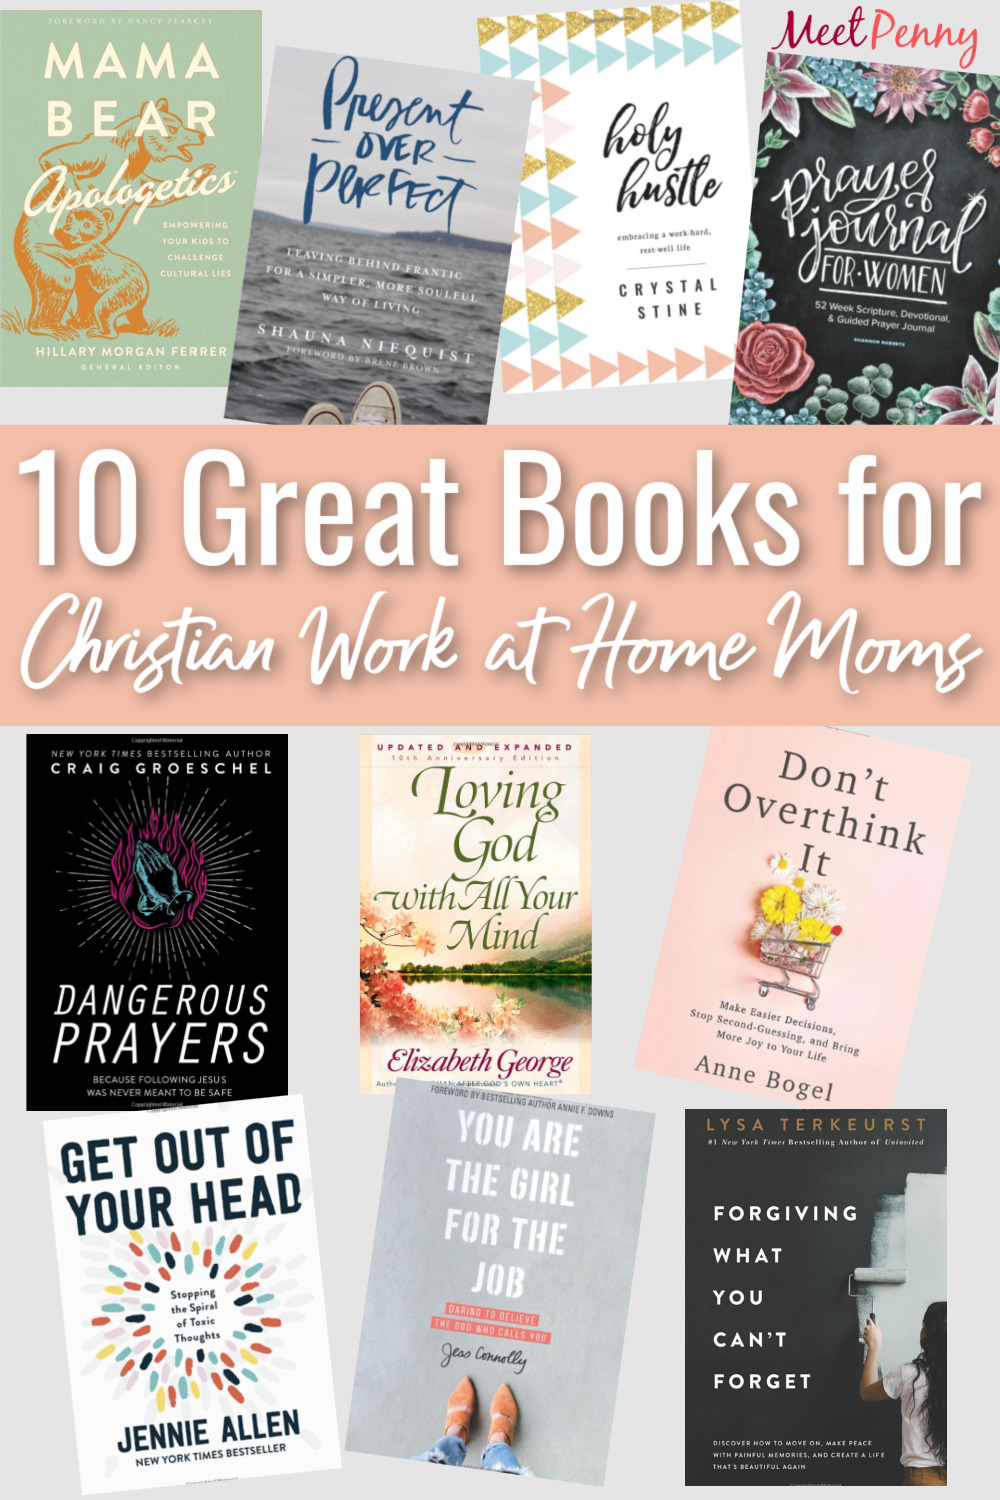 Encouraging books for Christian work at home moms